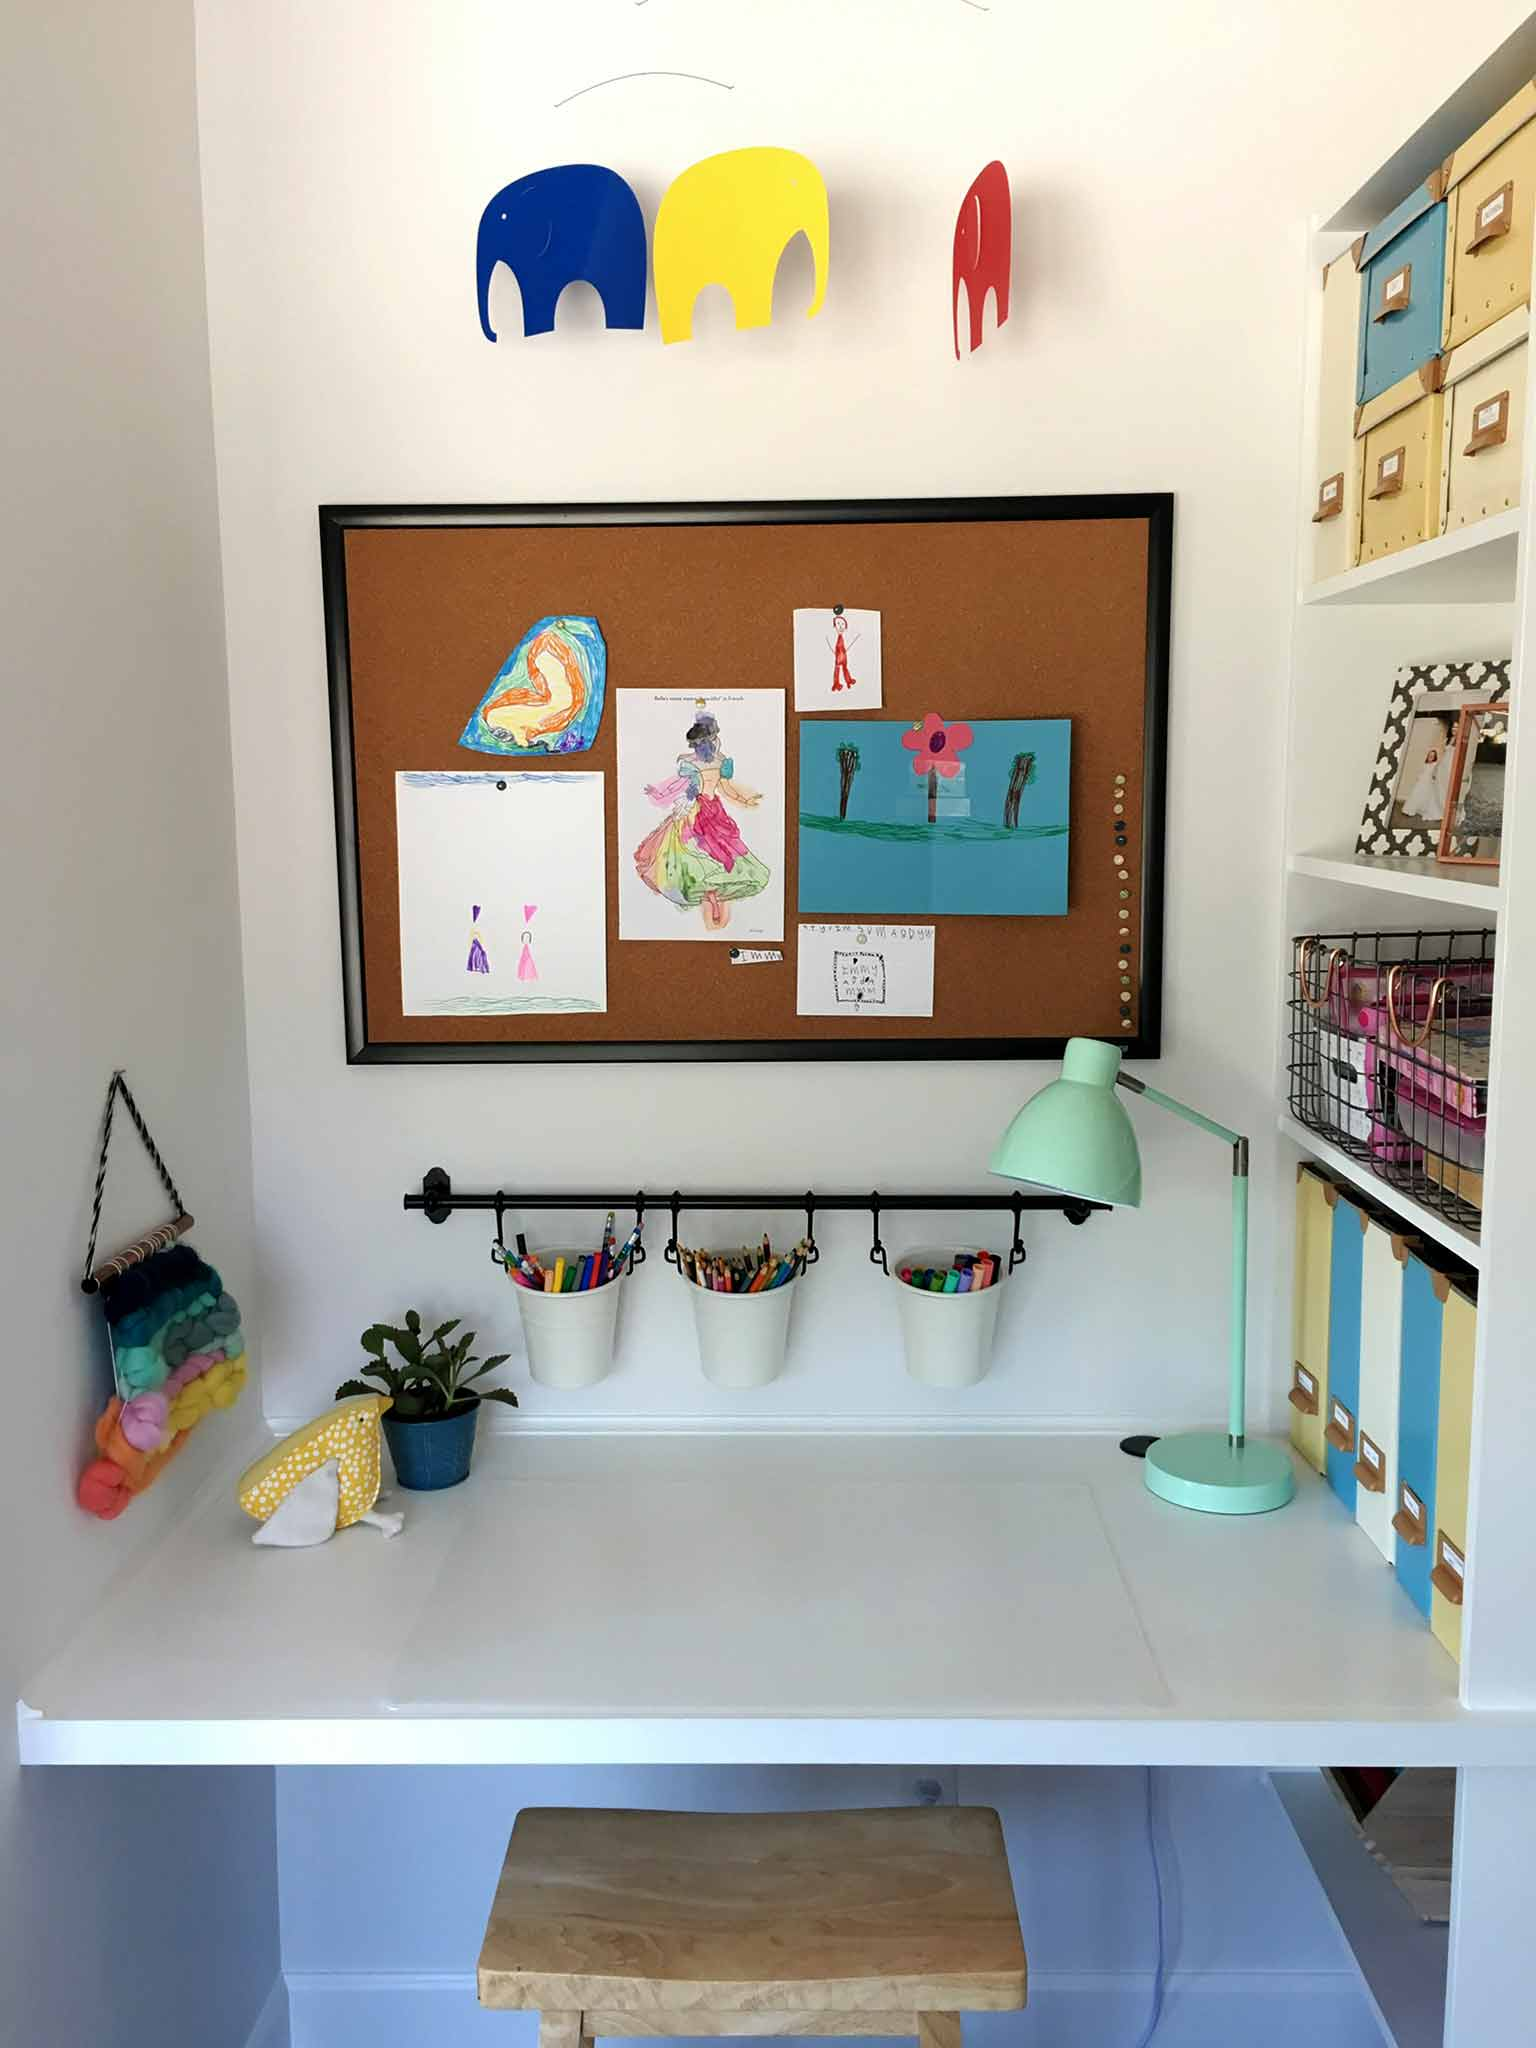 Kids art and craft station, built-in desk, closet and shelving - playroom house tour - That Homebird Life Blog